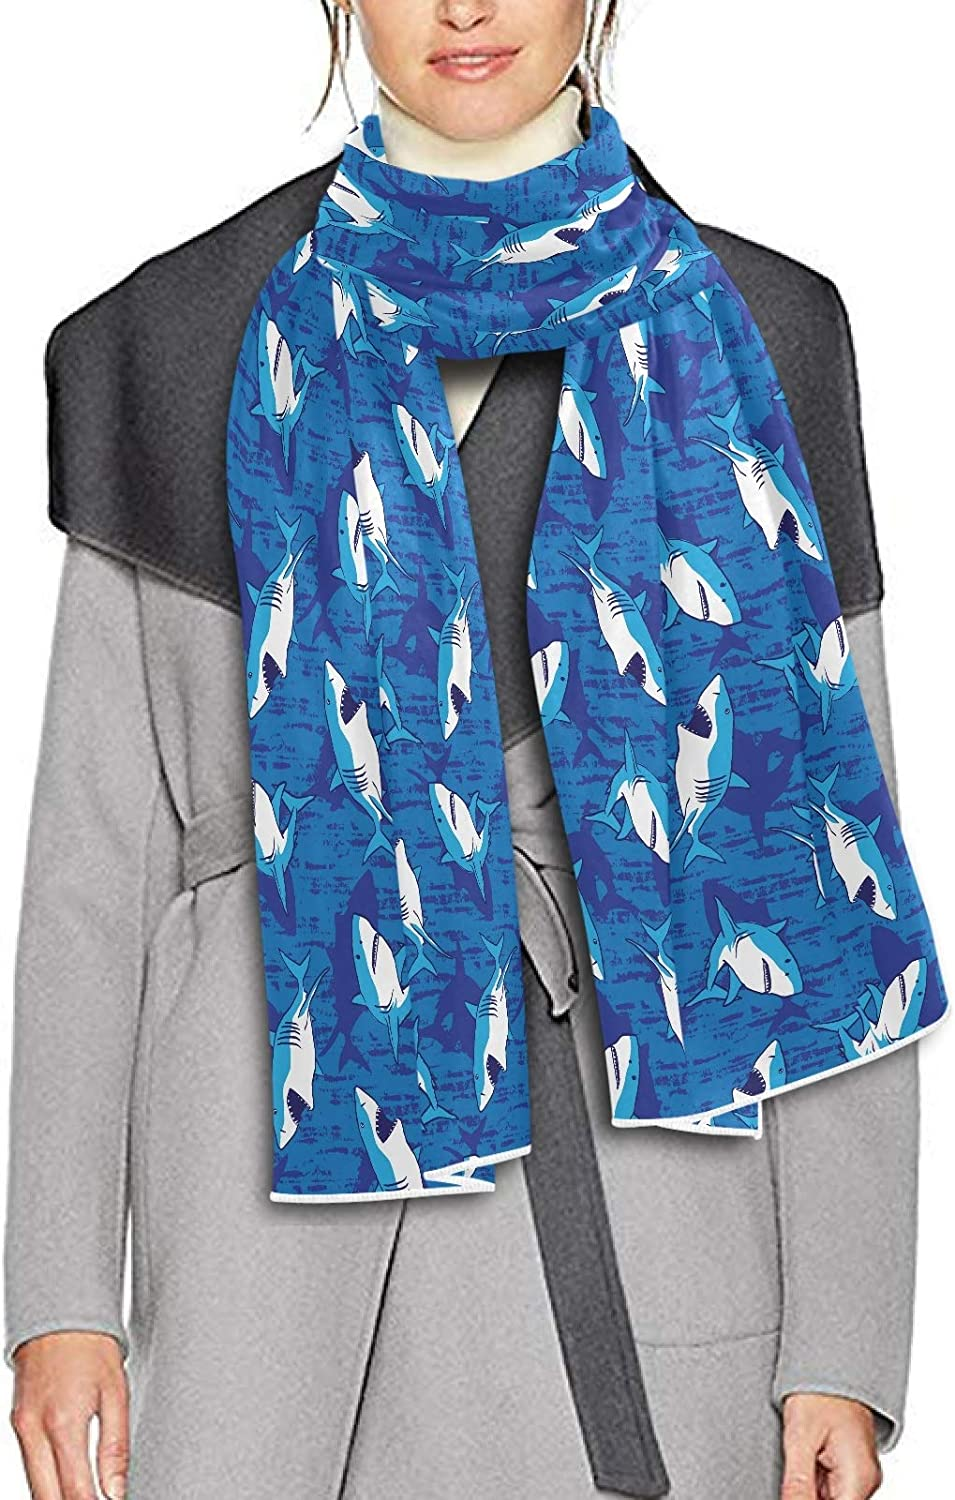 Scarf for Women and Men Shark Shawl Wraps Blanket Scarf Soft Winter Large Scarves Lightweight